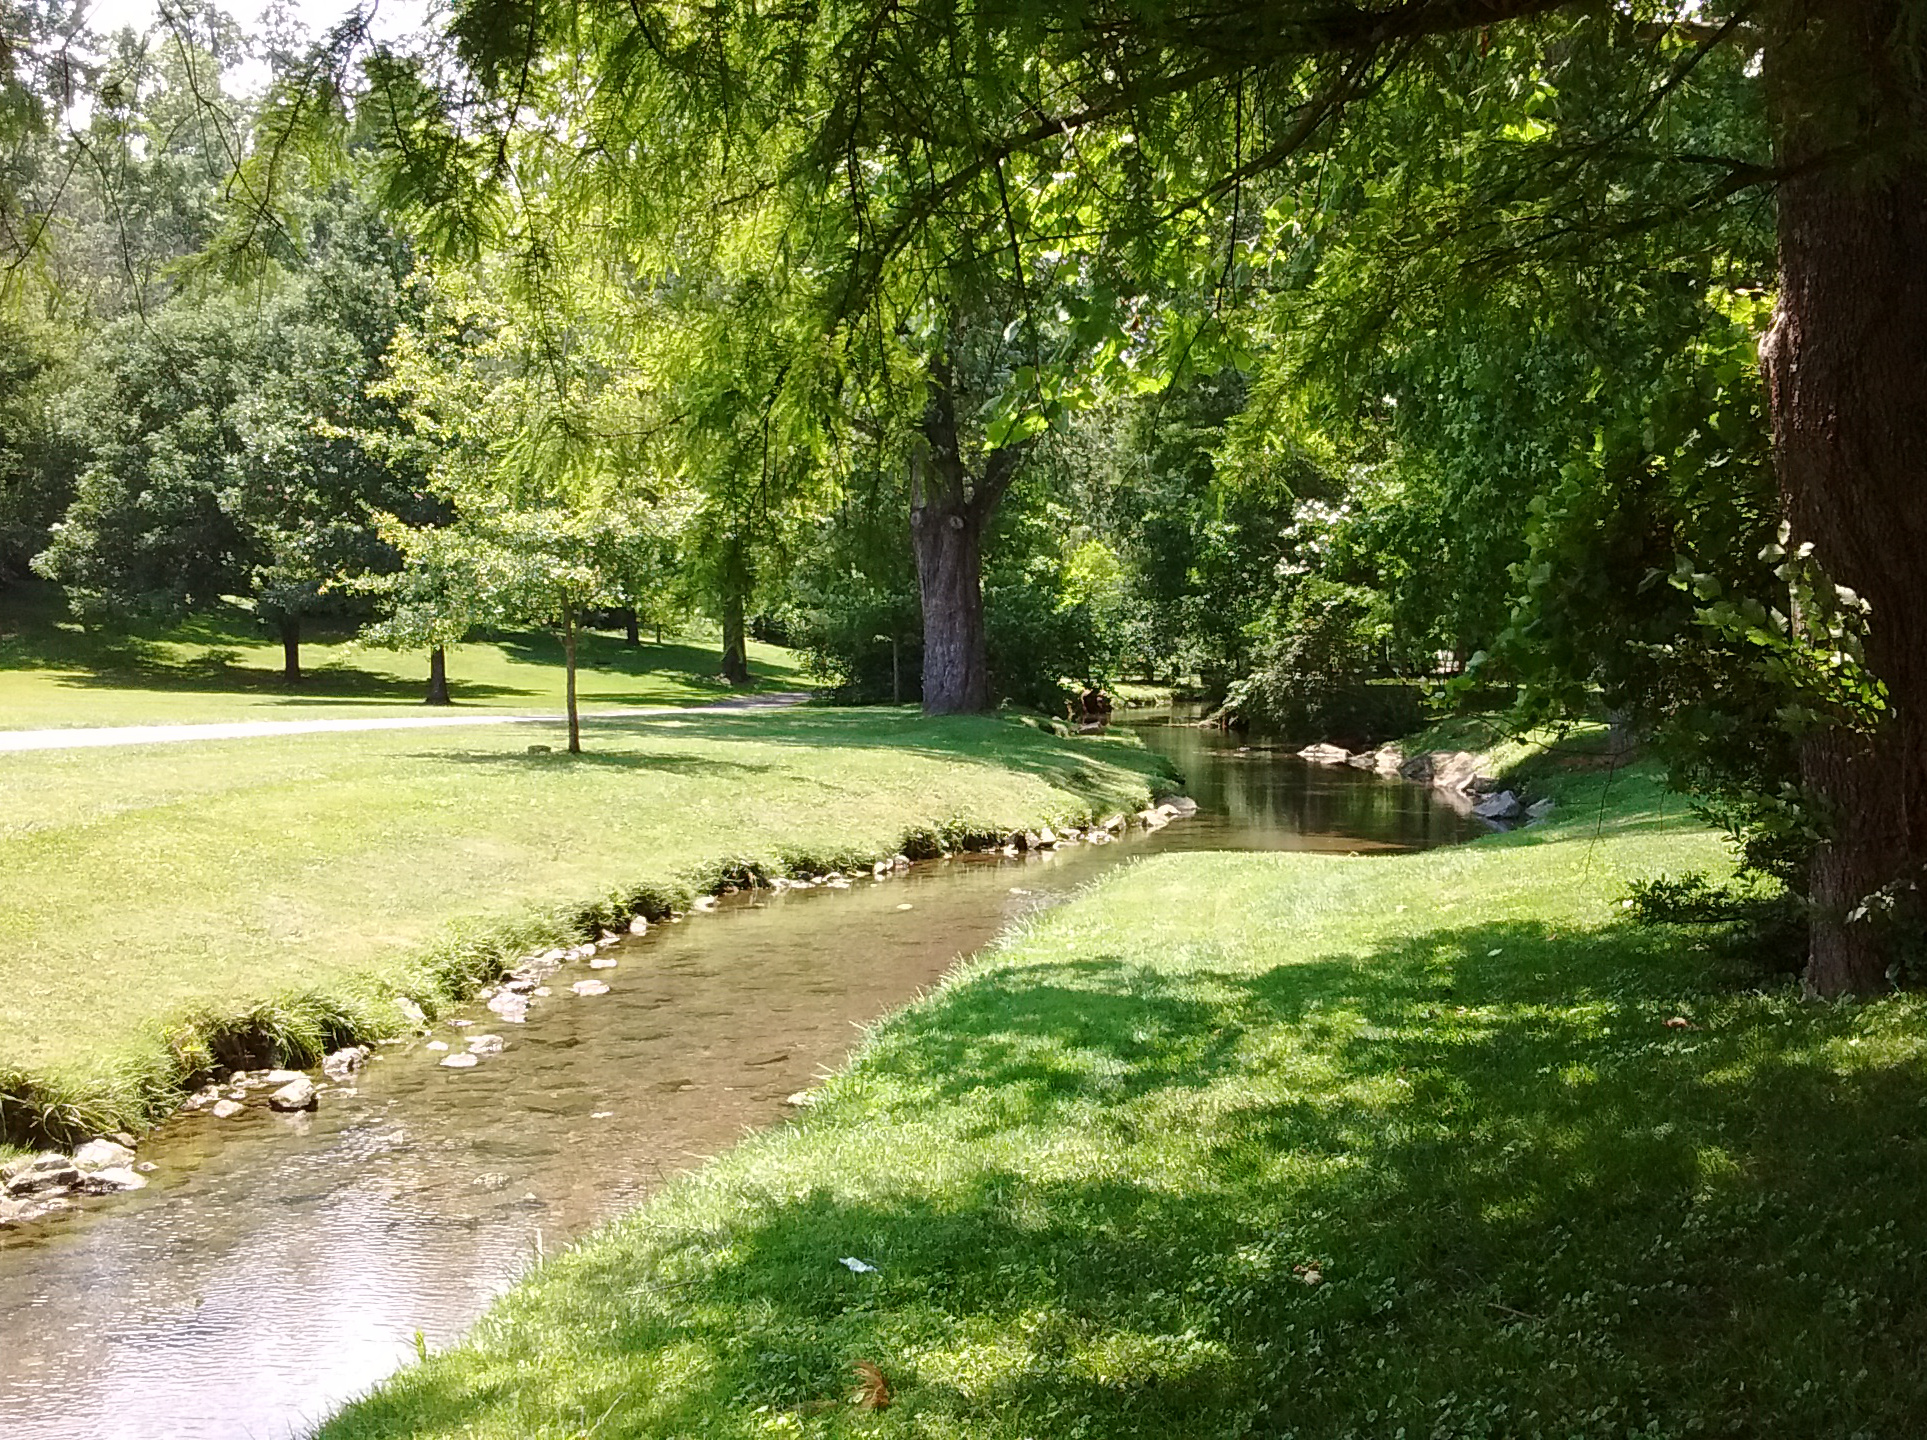 Stroubles Creek just upstream of the Virginia Tech Duck Pond in Blacksburg, Virginia; image by Vejlenser - Own work, CC BY-SA 4.0, https://commons.wikimedia.org/w/index.php?curid=49828867